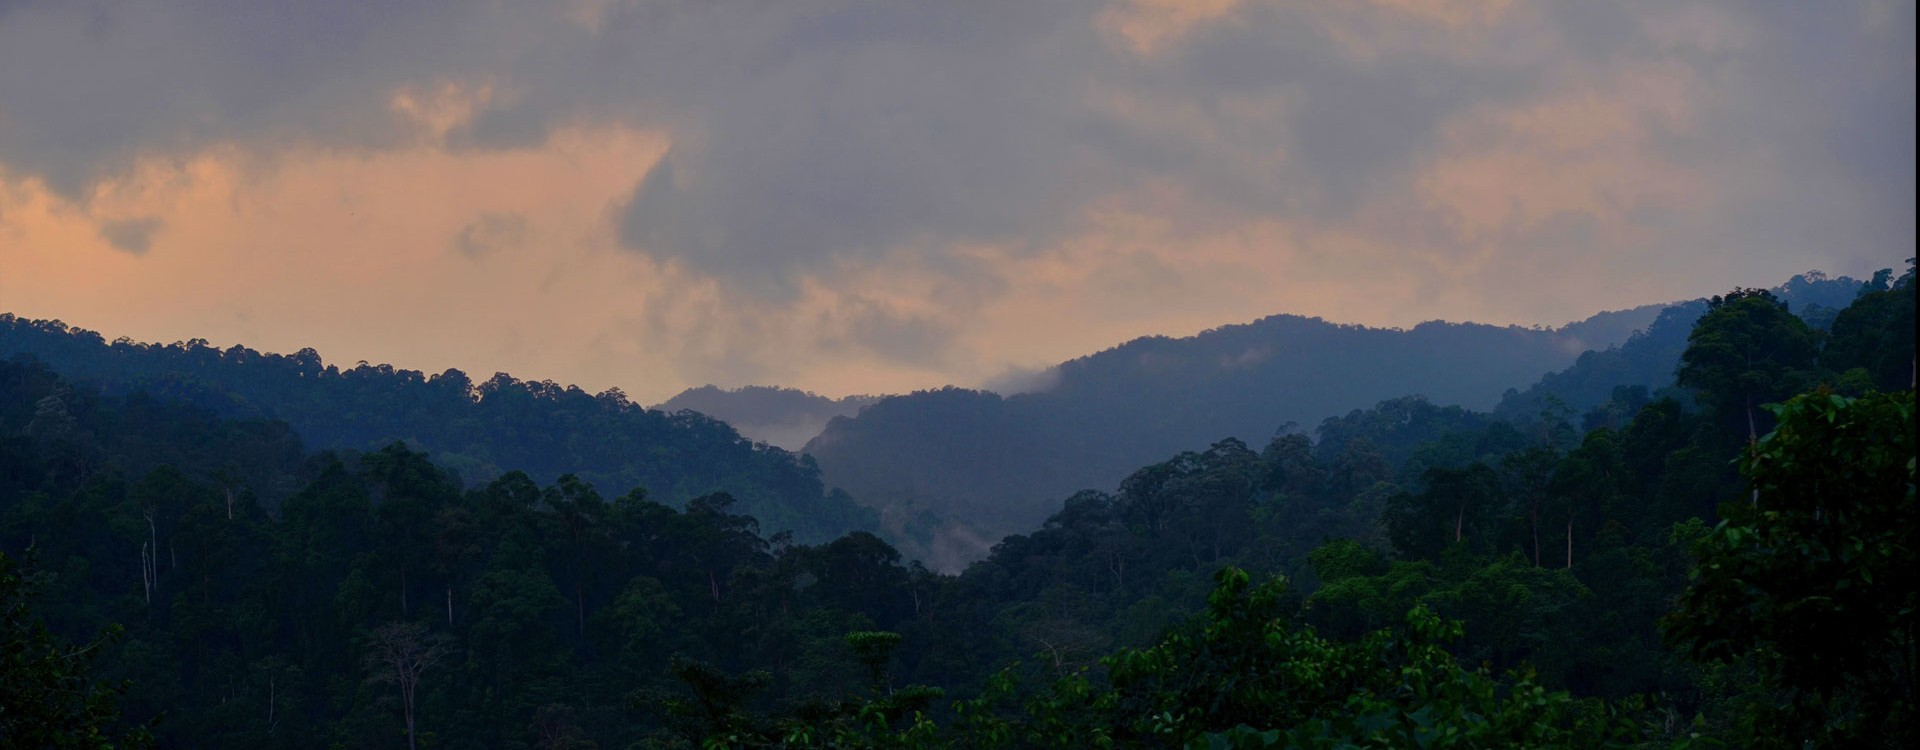 dawn on Berembun forest reserve. Clouds cling to the hills on cool mornings and after rains